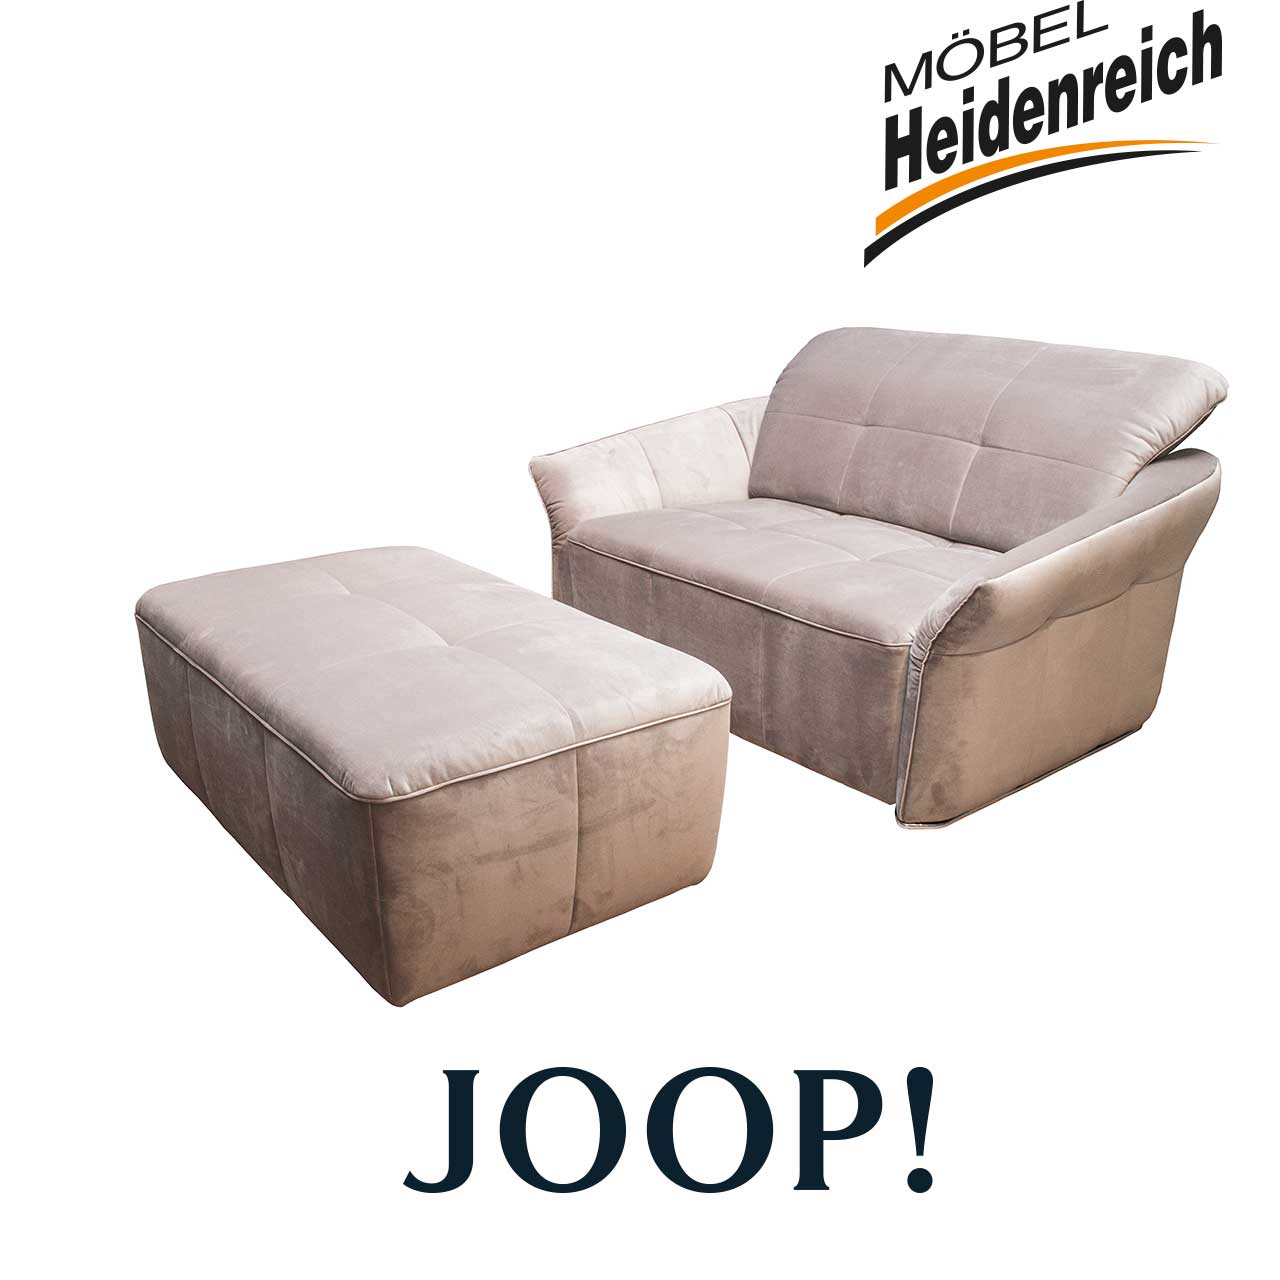 joop sessel overnight mit hocker motorisch grau. Black Bedroom Furniture Sets. Home Design Ideas